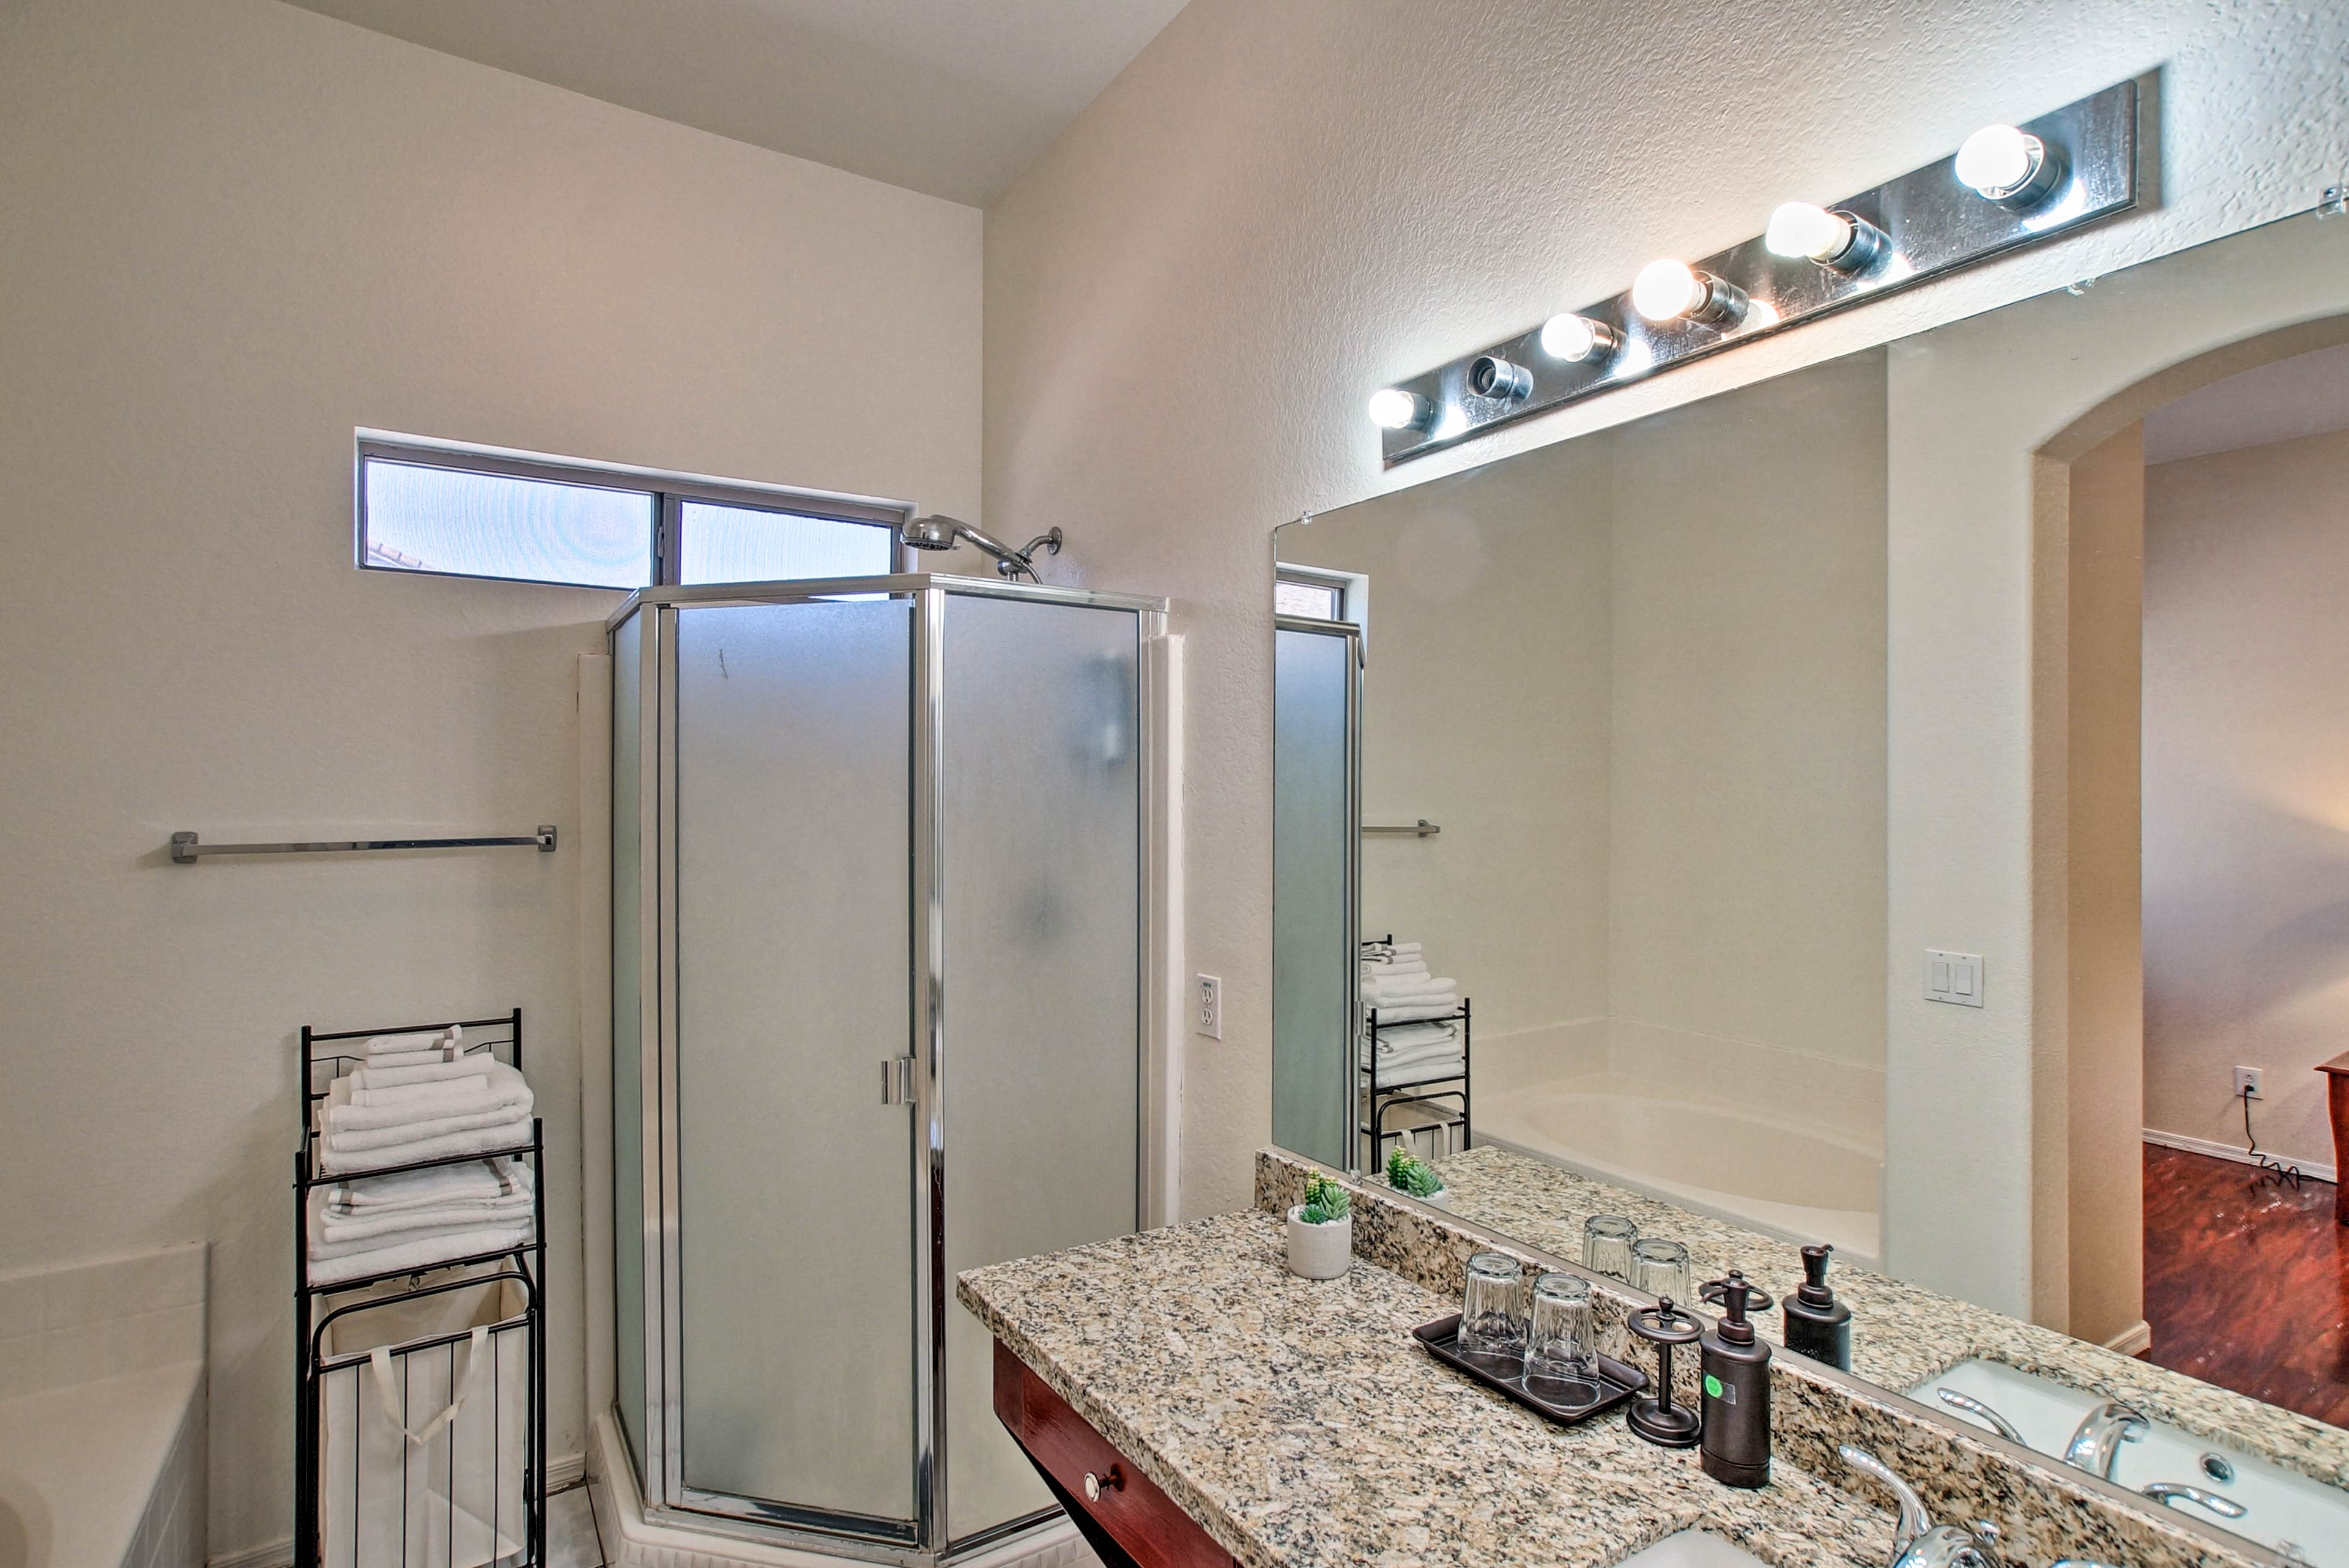 The en-suite master bathroom has a stand-up shower and a soaking tub.